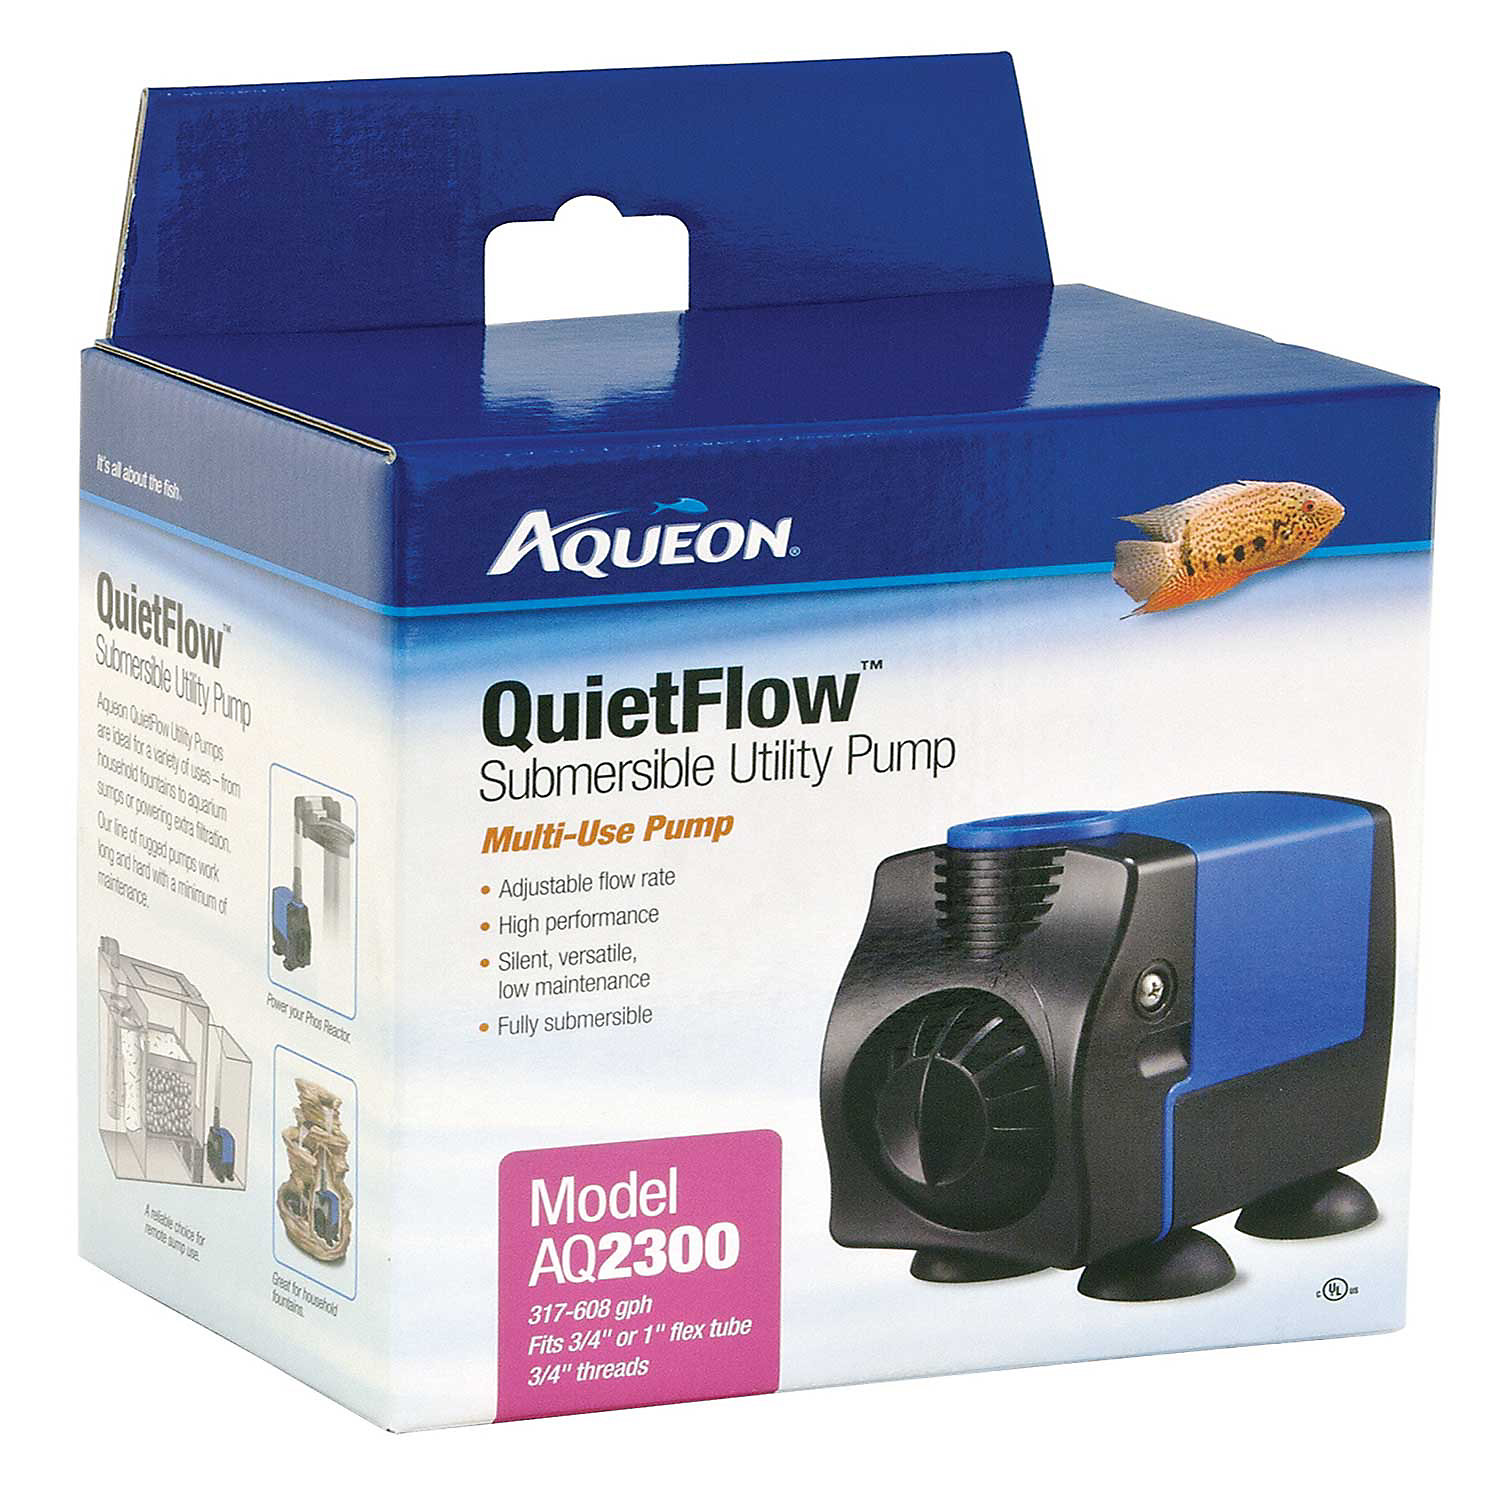 Aqueon Quietflow 1700 Submersible Utility Pump Black / Blue